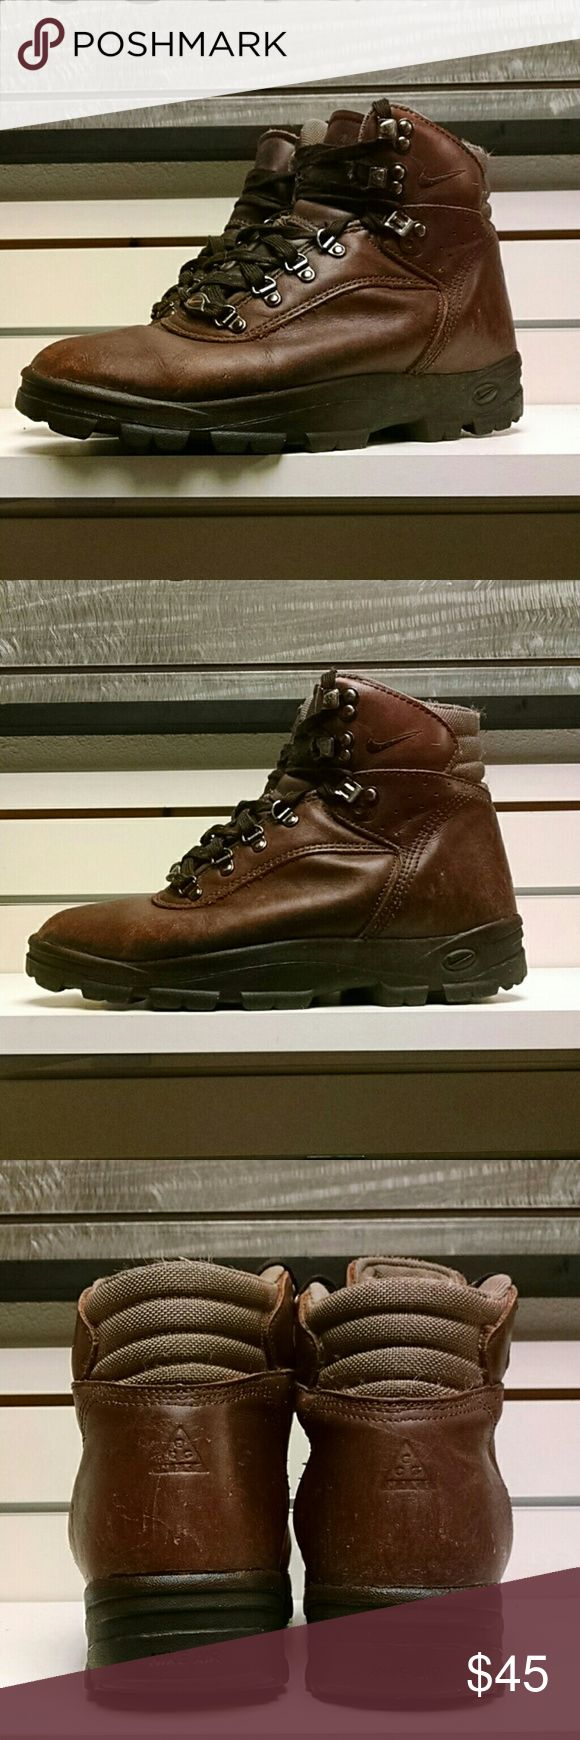 Nike Thinsulate Thermal Boots Mens size 10 Nike  Thinsulate boots men's size 10. Upper Leather in excellent condition and Soles show no noticable wear. Nike Shoes Boots